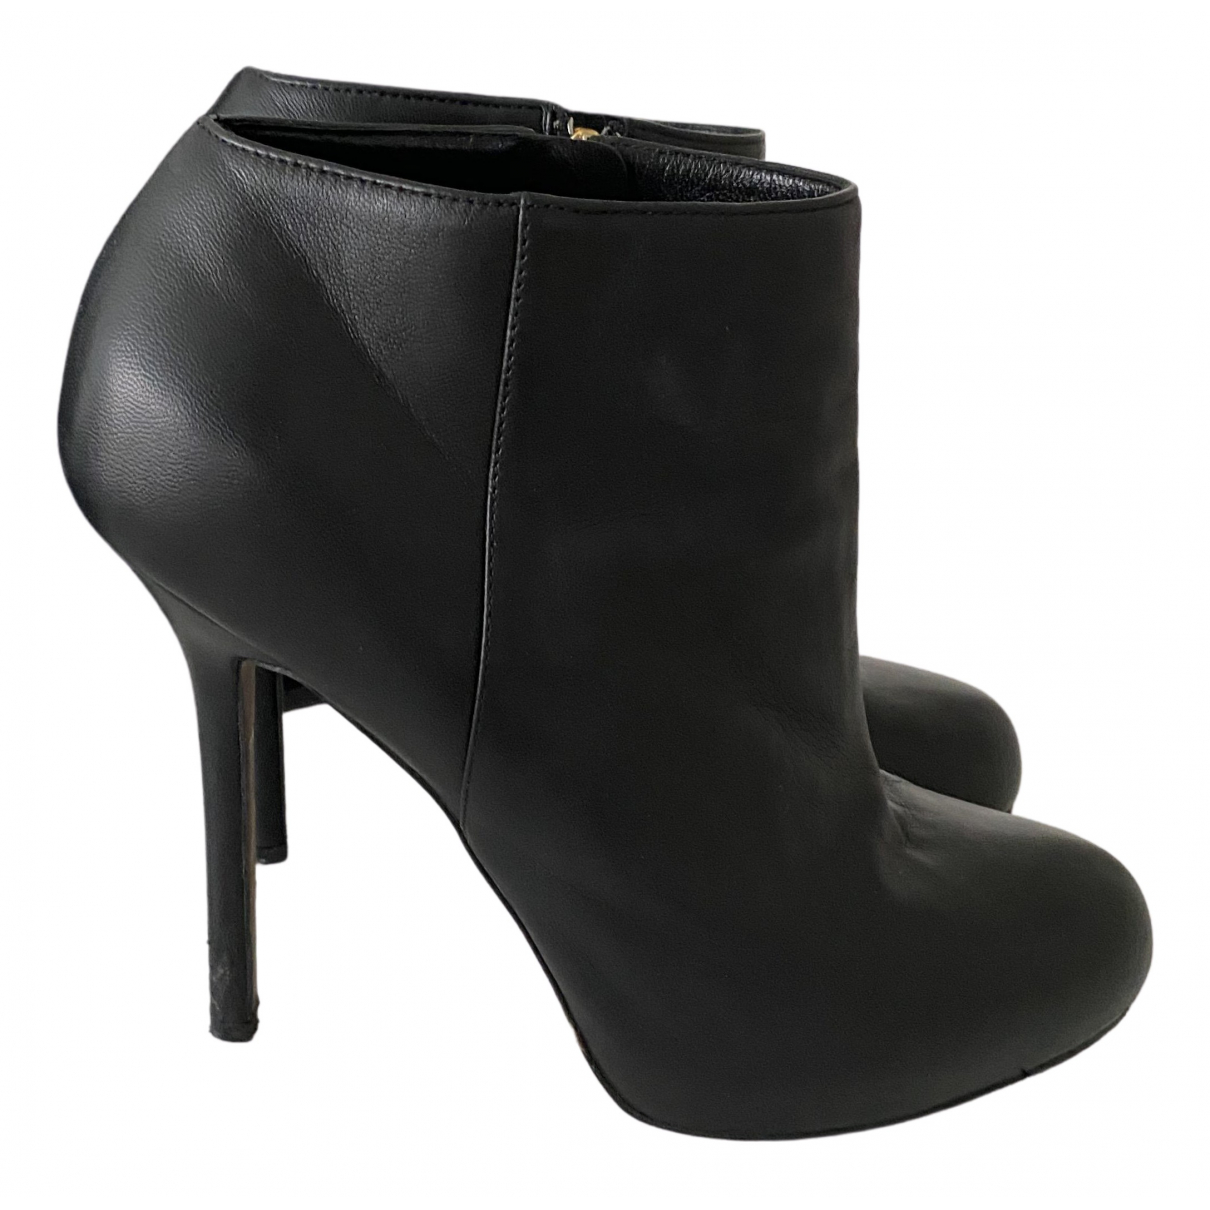 Sergio Rossi \N Black Leather Ankle boots for Women 38 EU